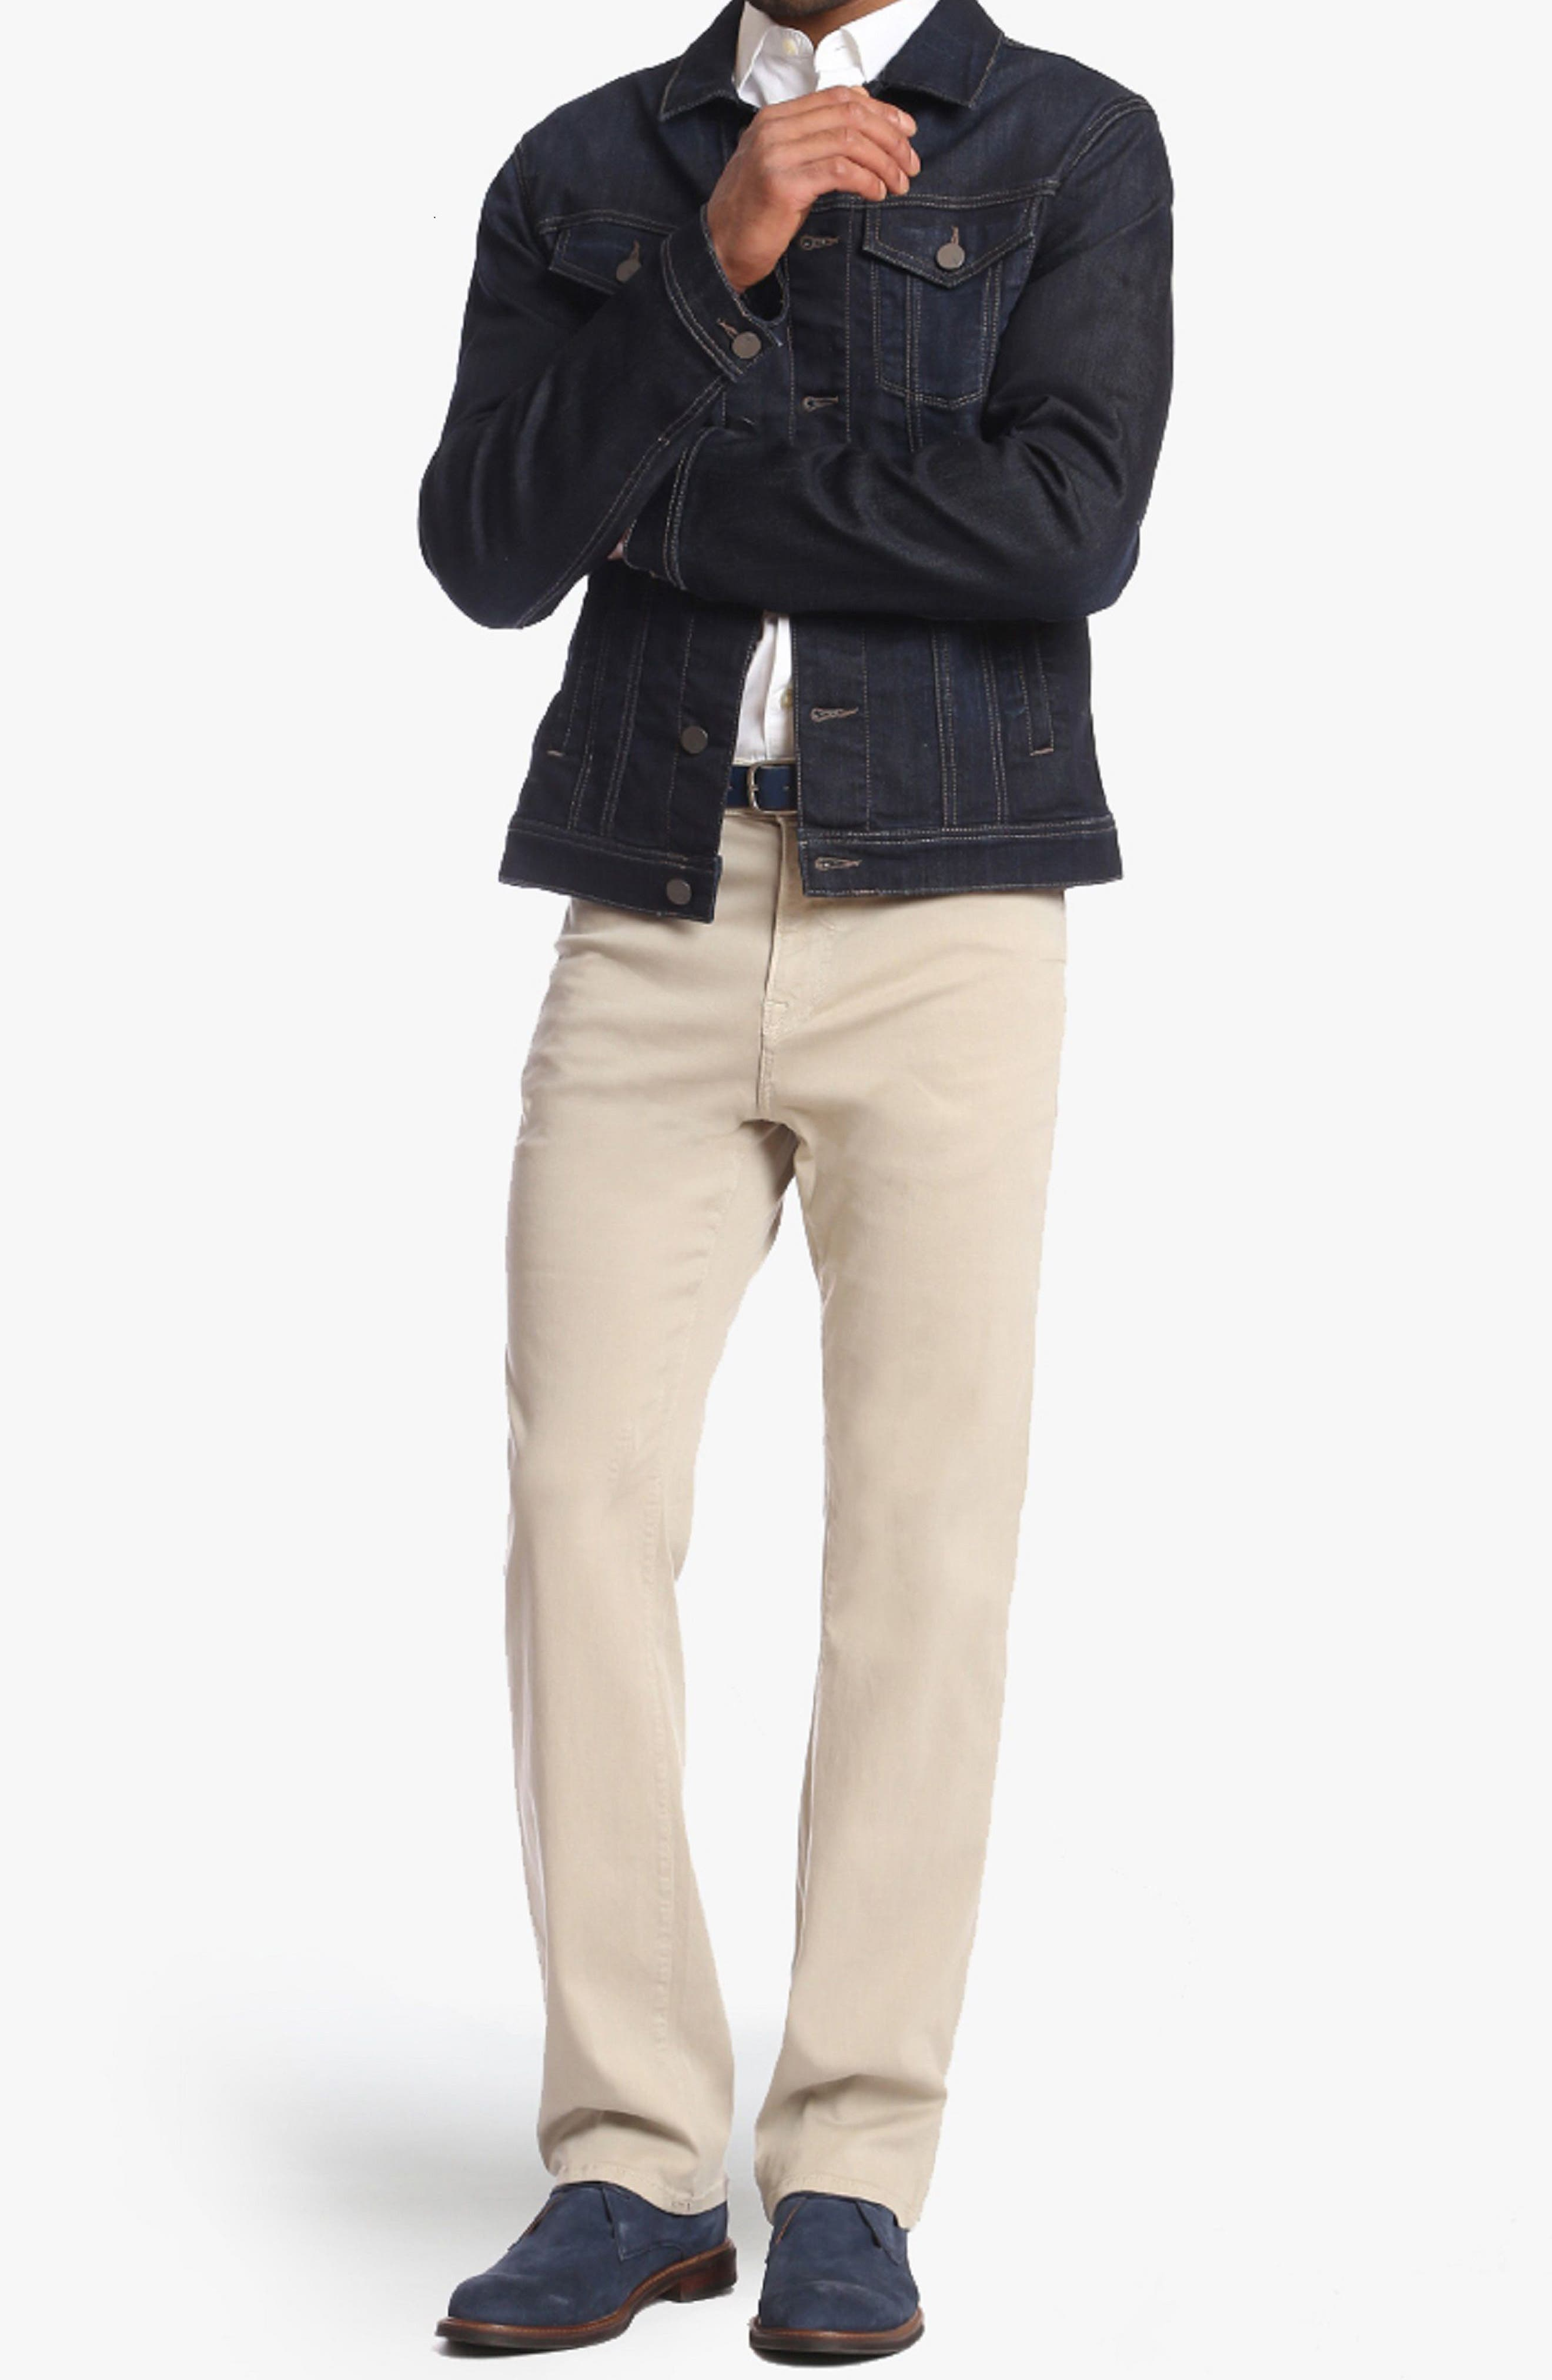 Charisma Relaxed Fit Jeans,                             Alternate thumbnail 4, color,                             250